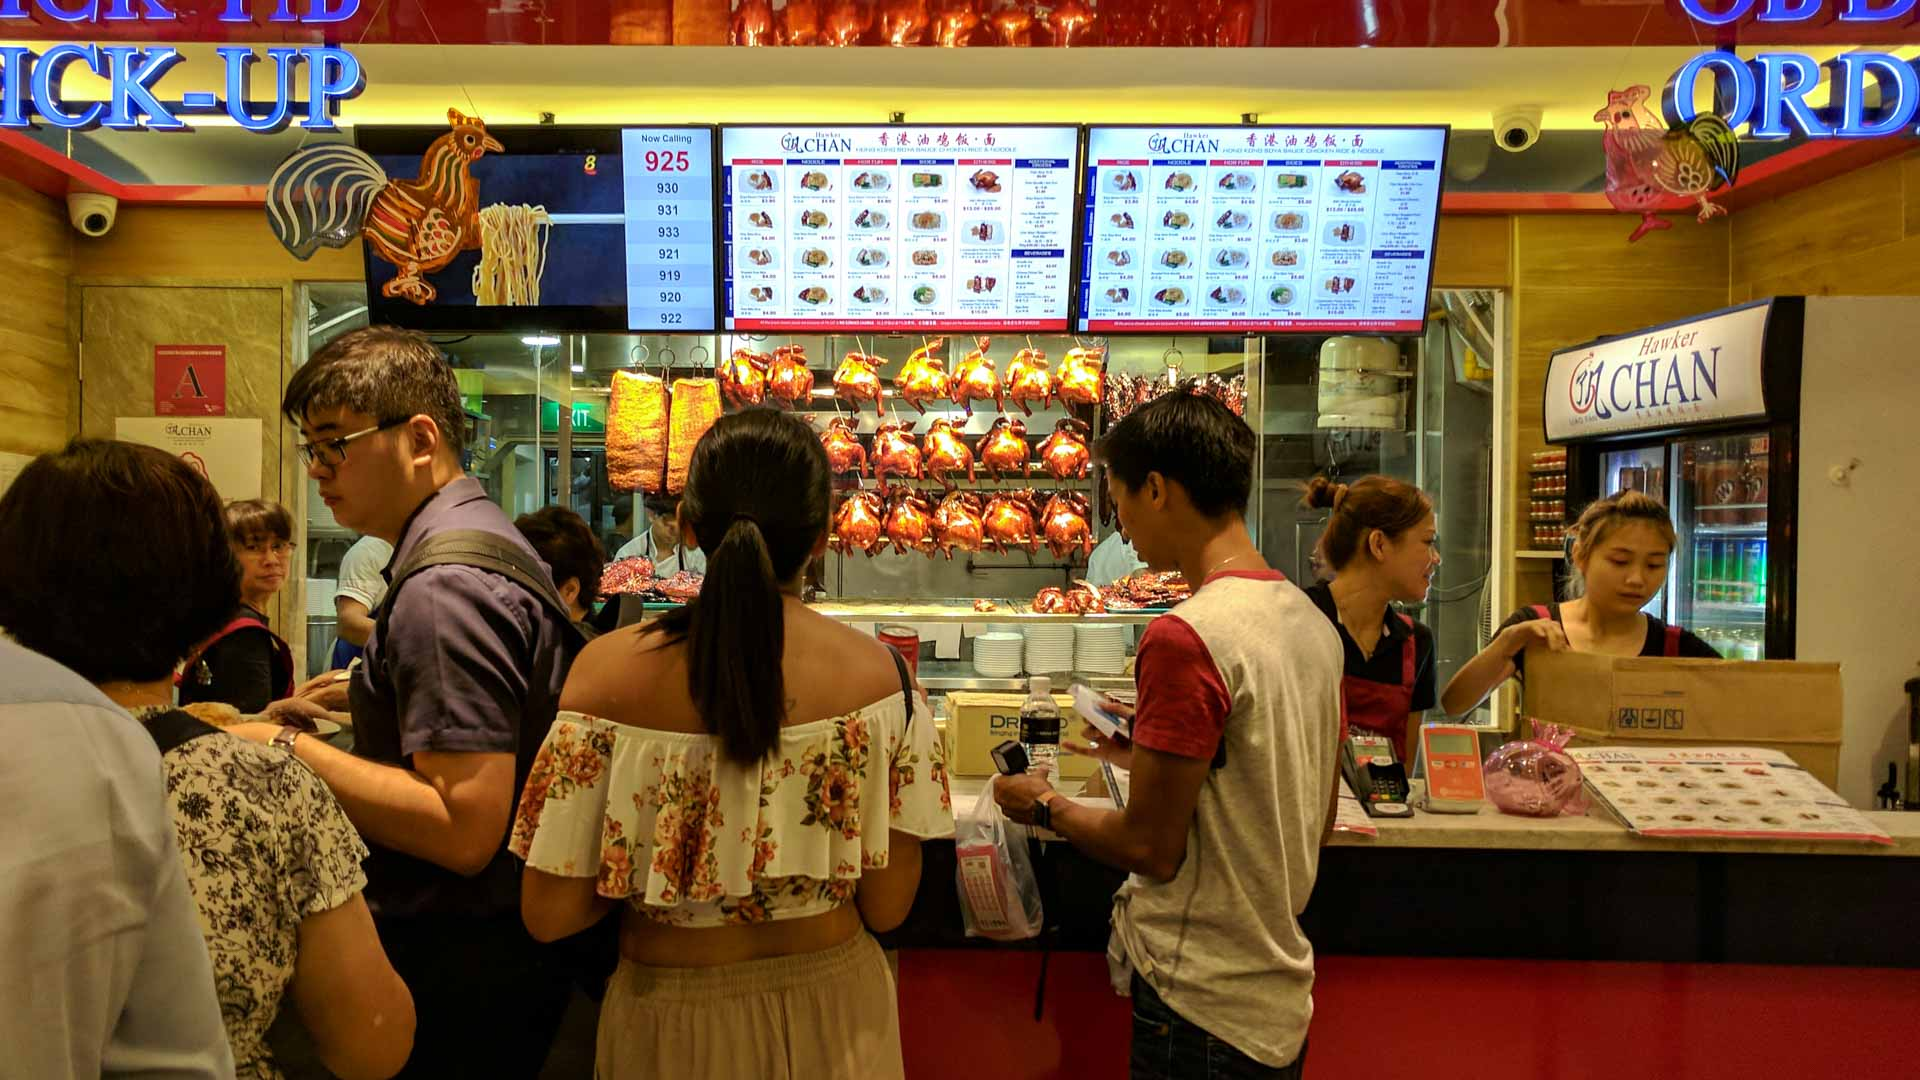 Singapore Hawker Chan queue